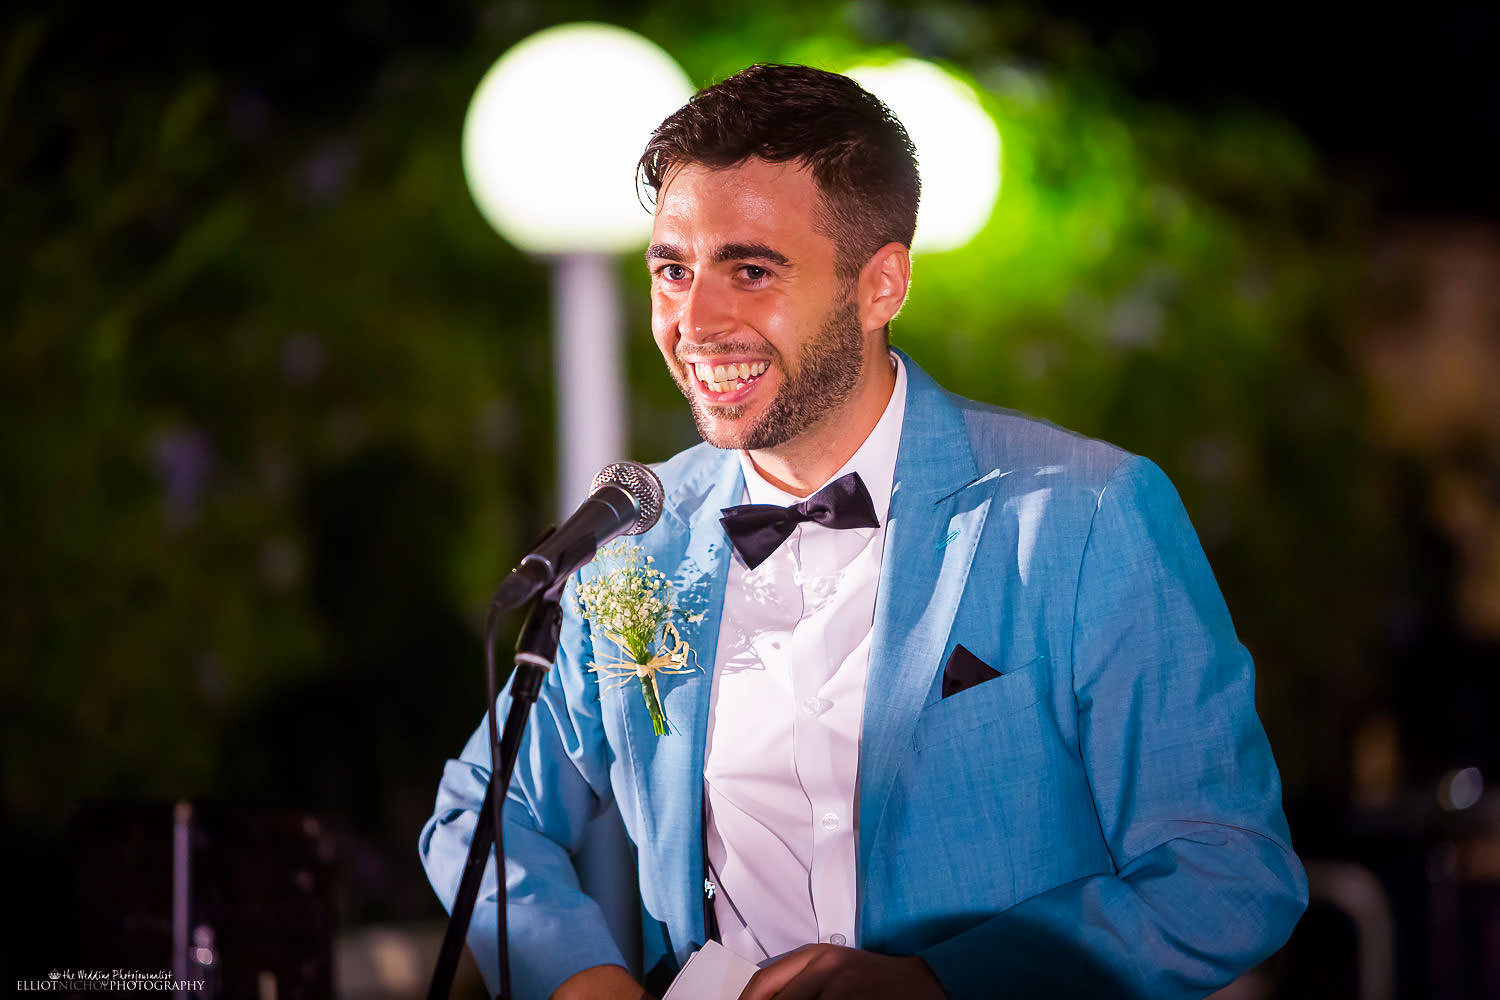 Grooms speech during the wedding reception at the Olive Gardens, Mdina, Malta.